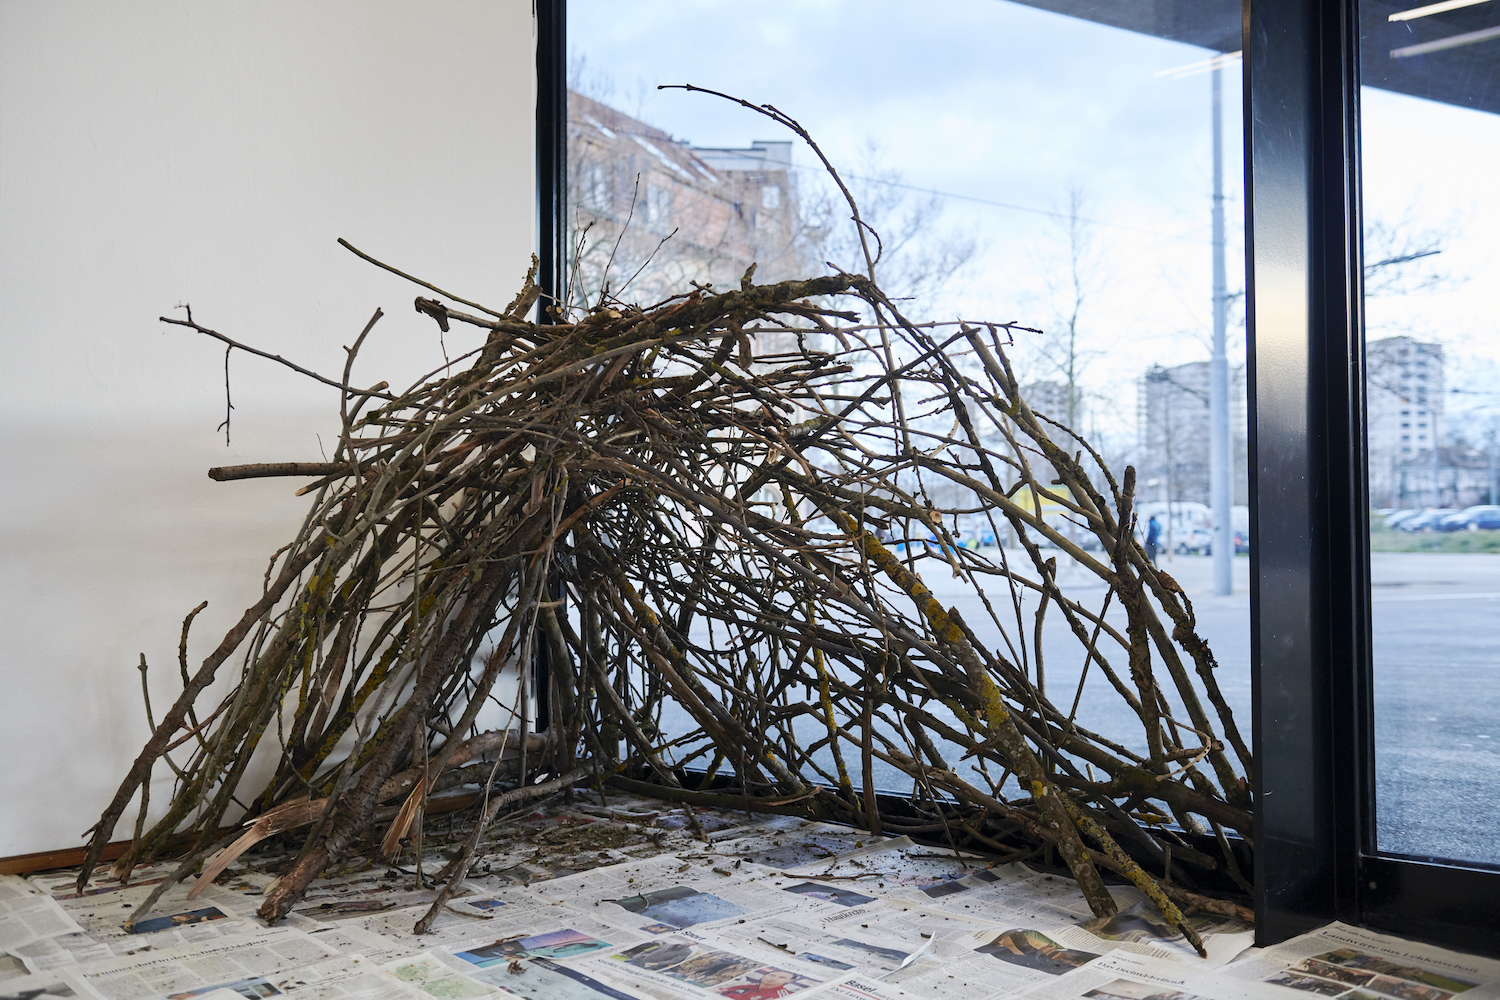 Suzanna Zak, Obedient Improvised Shelter (detail), 2020. Space blankets, found sticks, local newspapers. Dimensions variable. VITRINE, Basel. Photographer: Nici Jost.